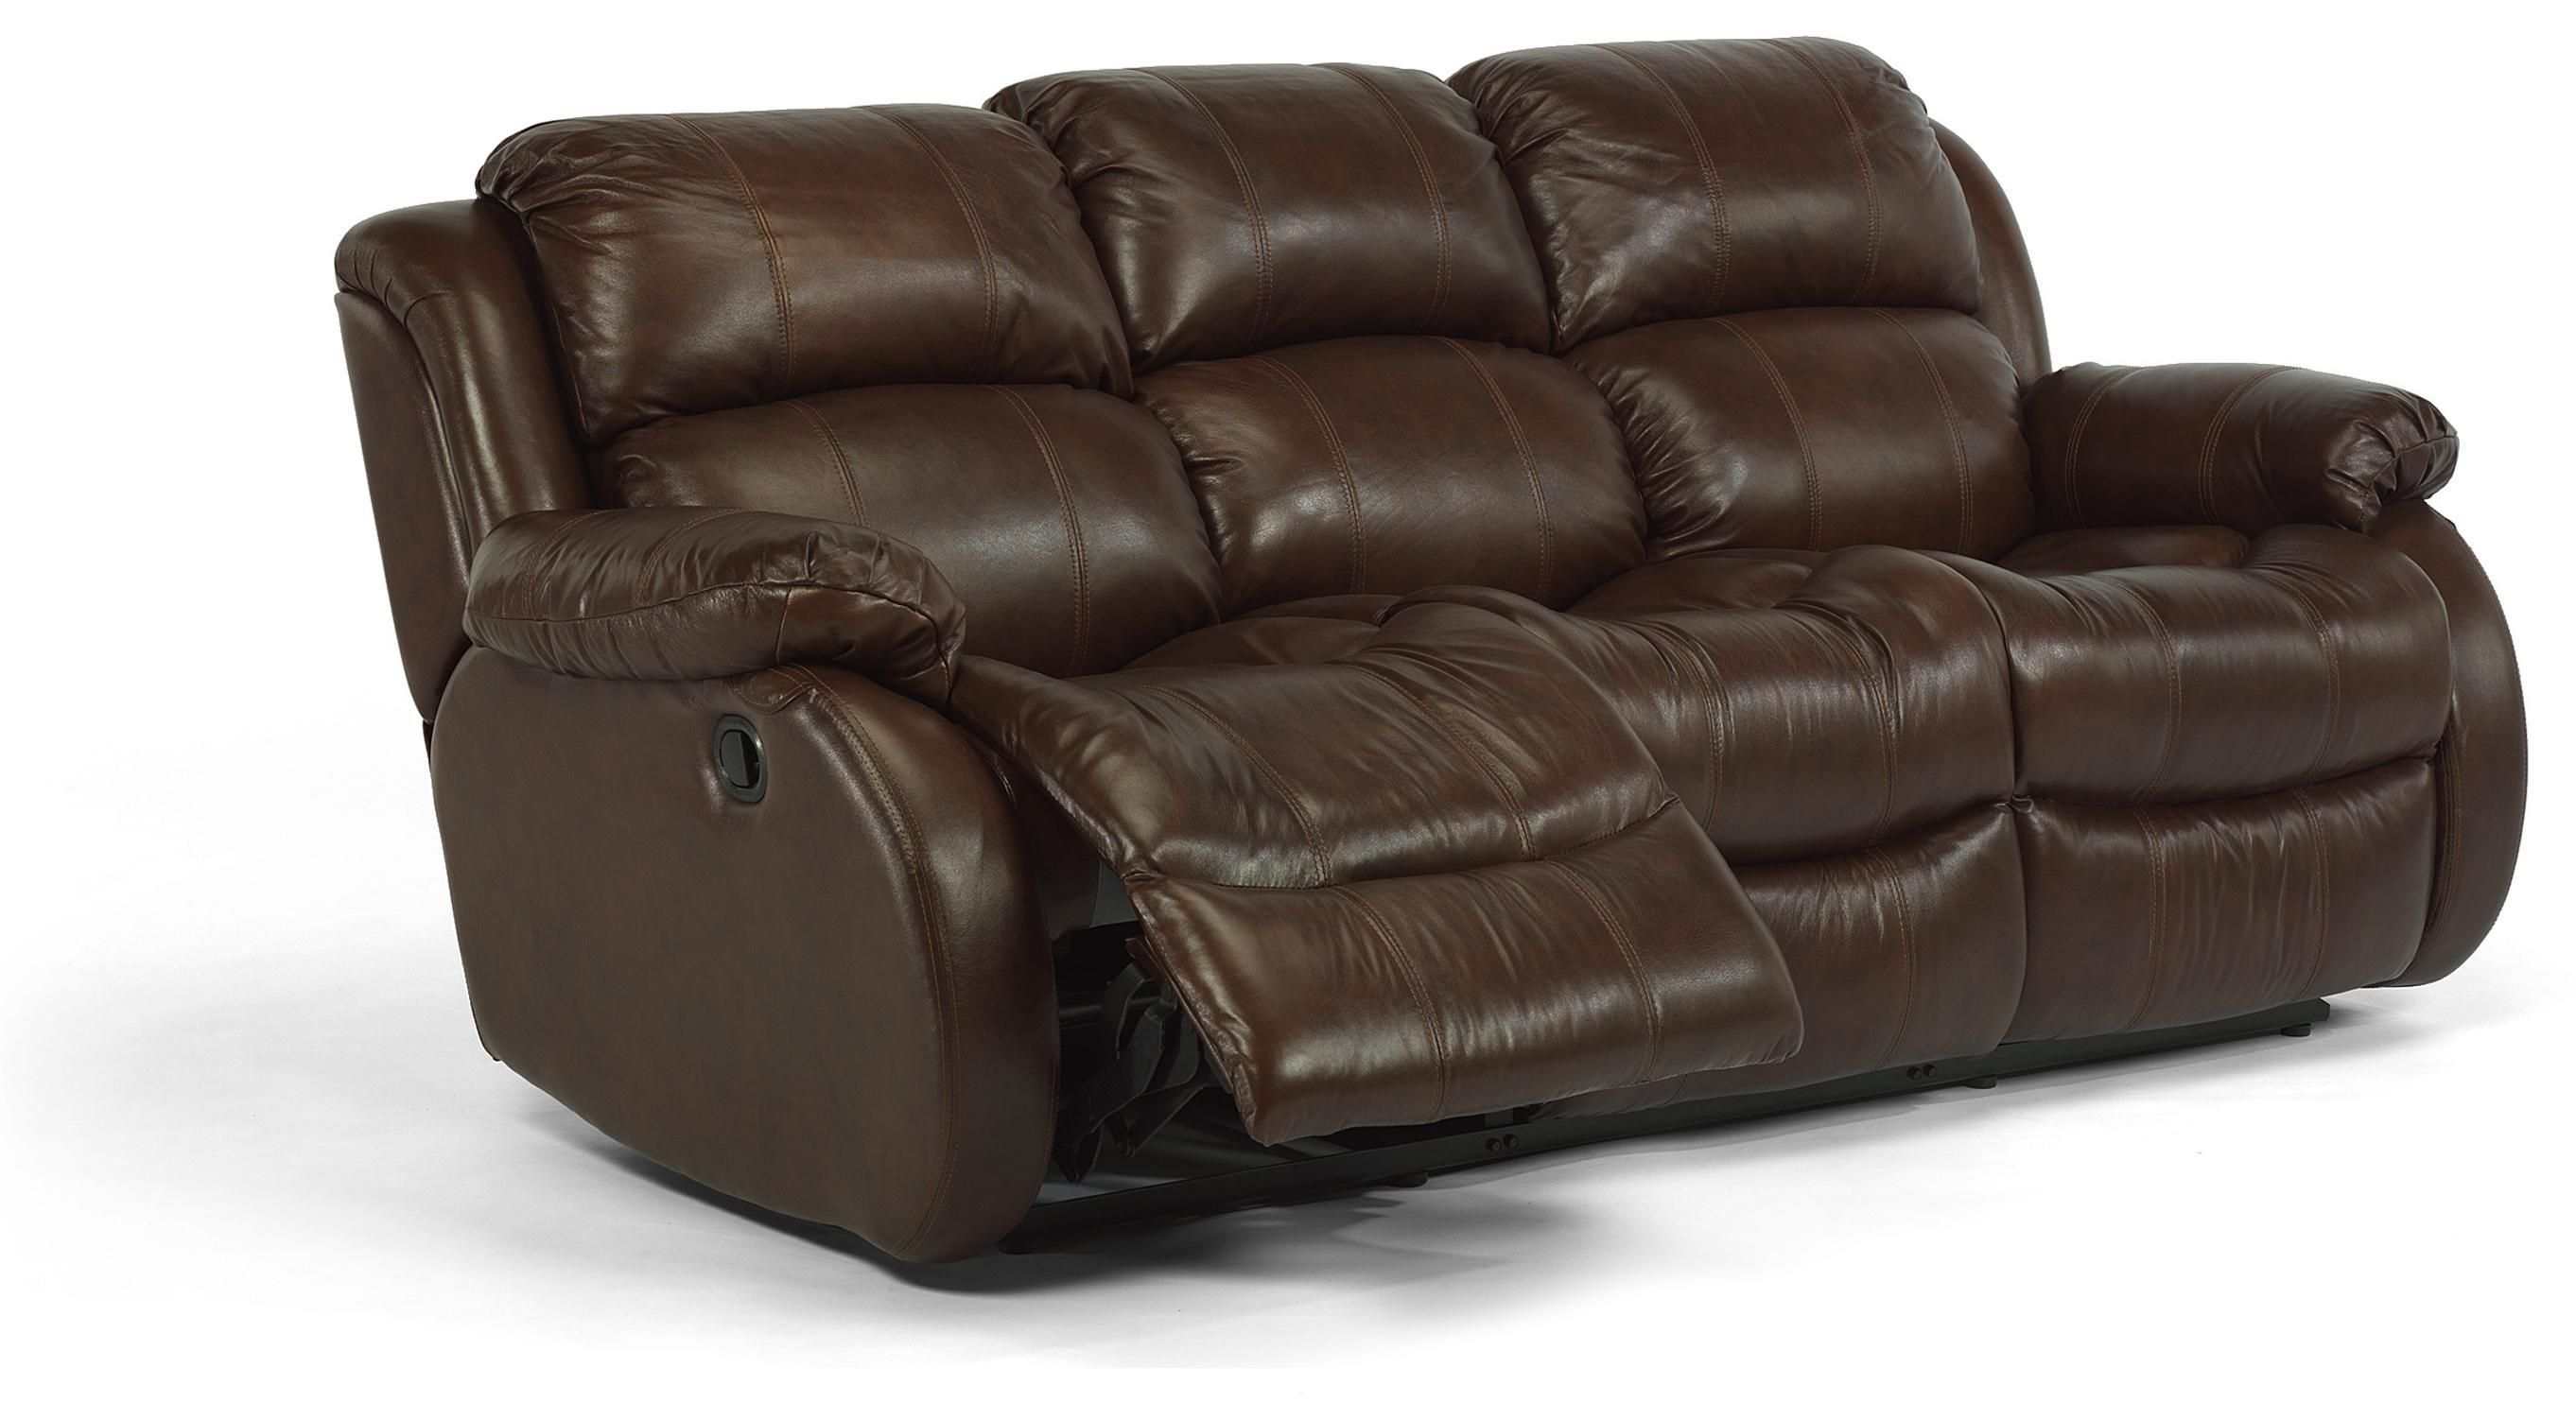 Flexsteel Furniture: Latitudes Leather Collection featuring 3-seat ...